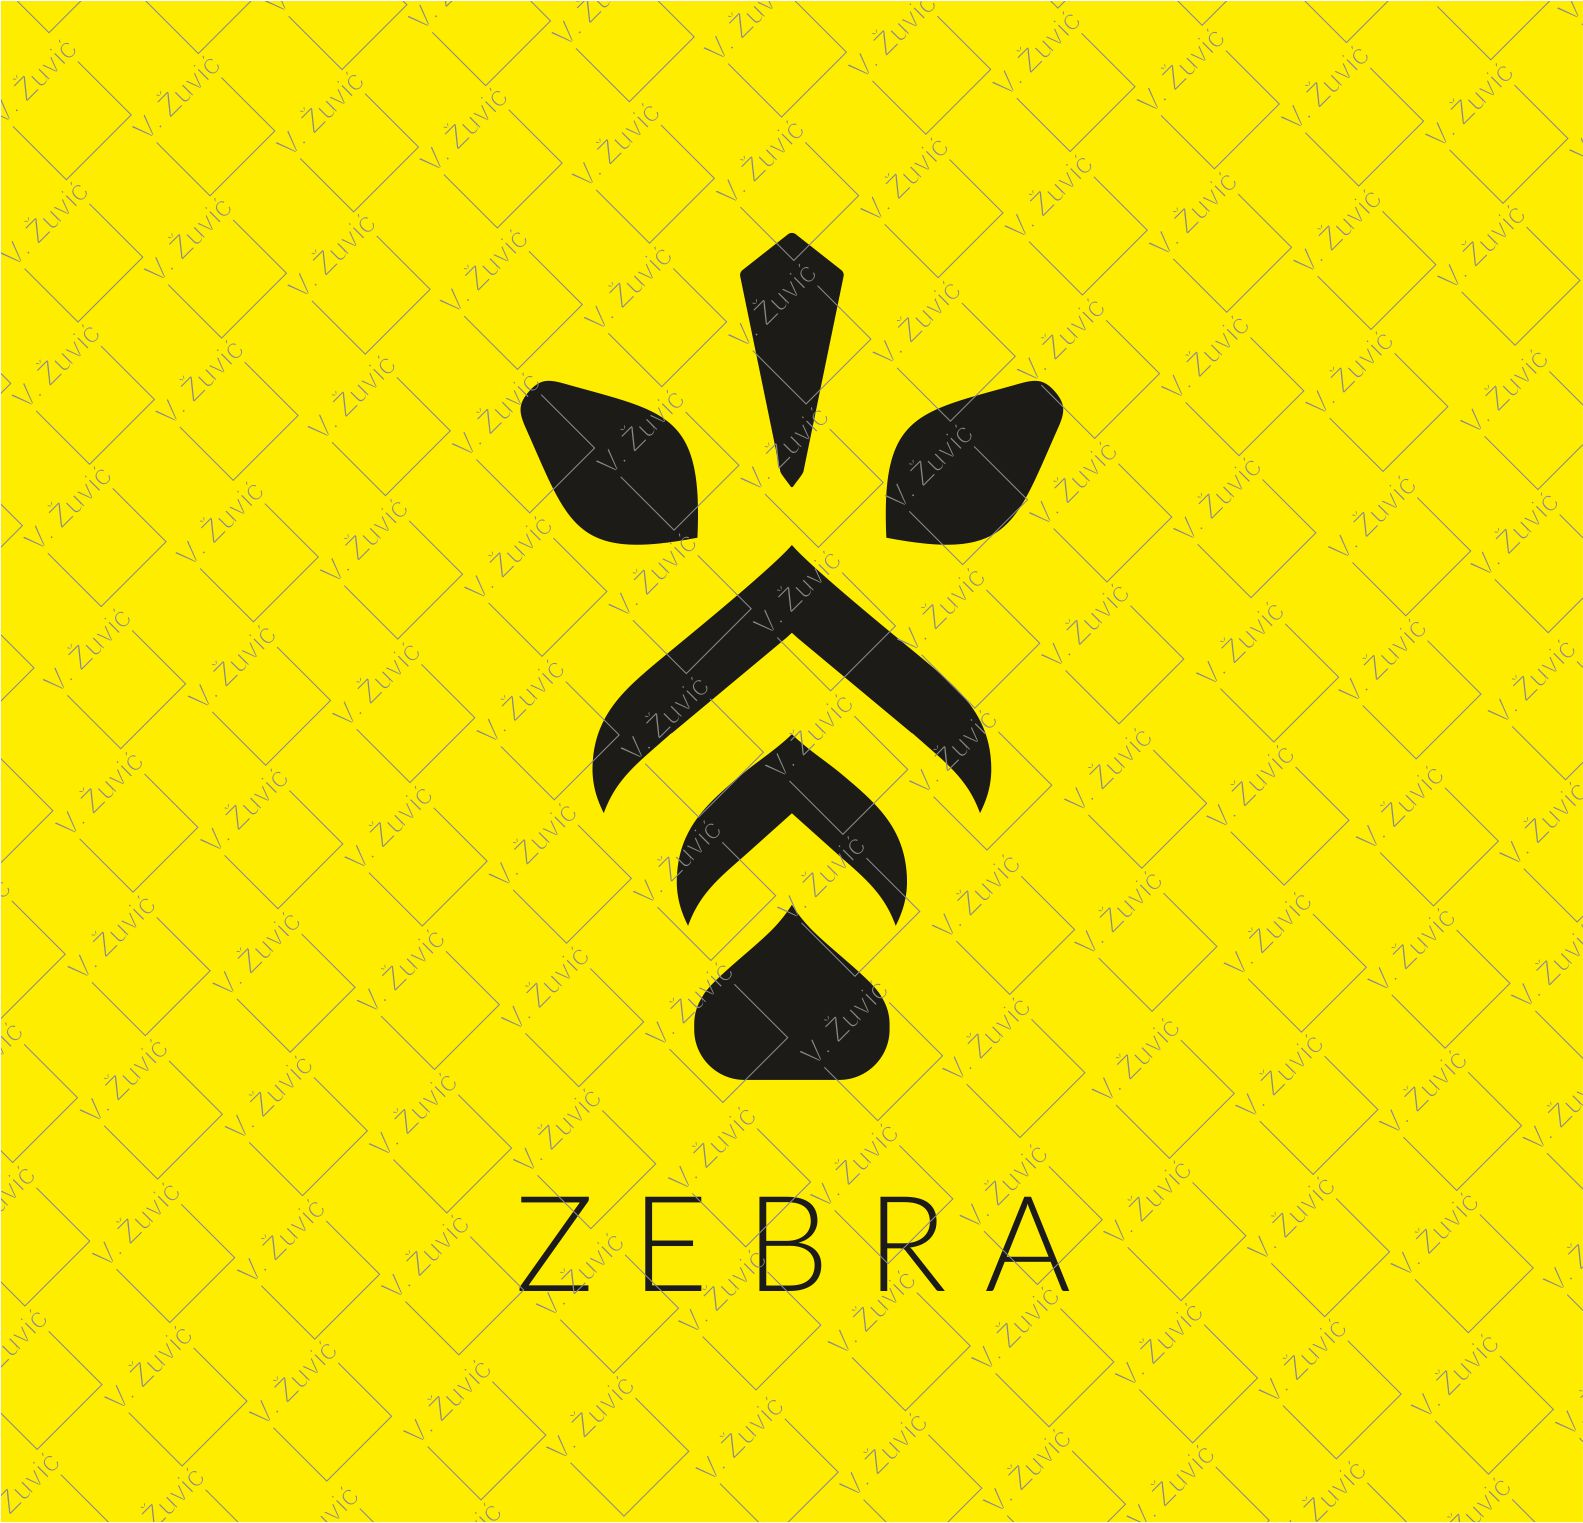 Logo is available for sale. Zebra simple logo design.   Logotip je dostupan za prodaju. Dizajn logotipa - stilizirana zebra.